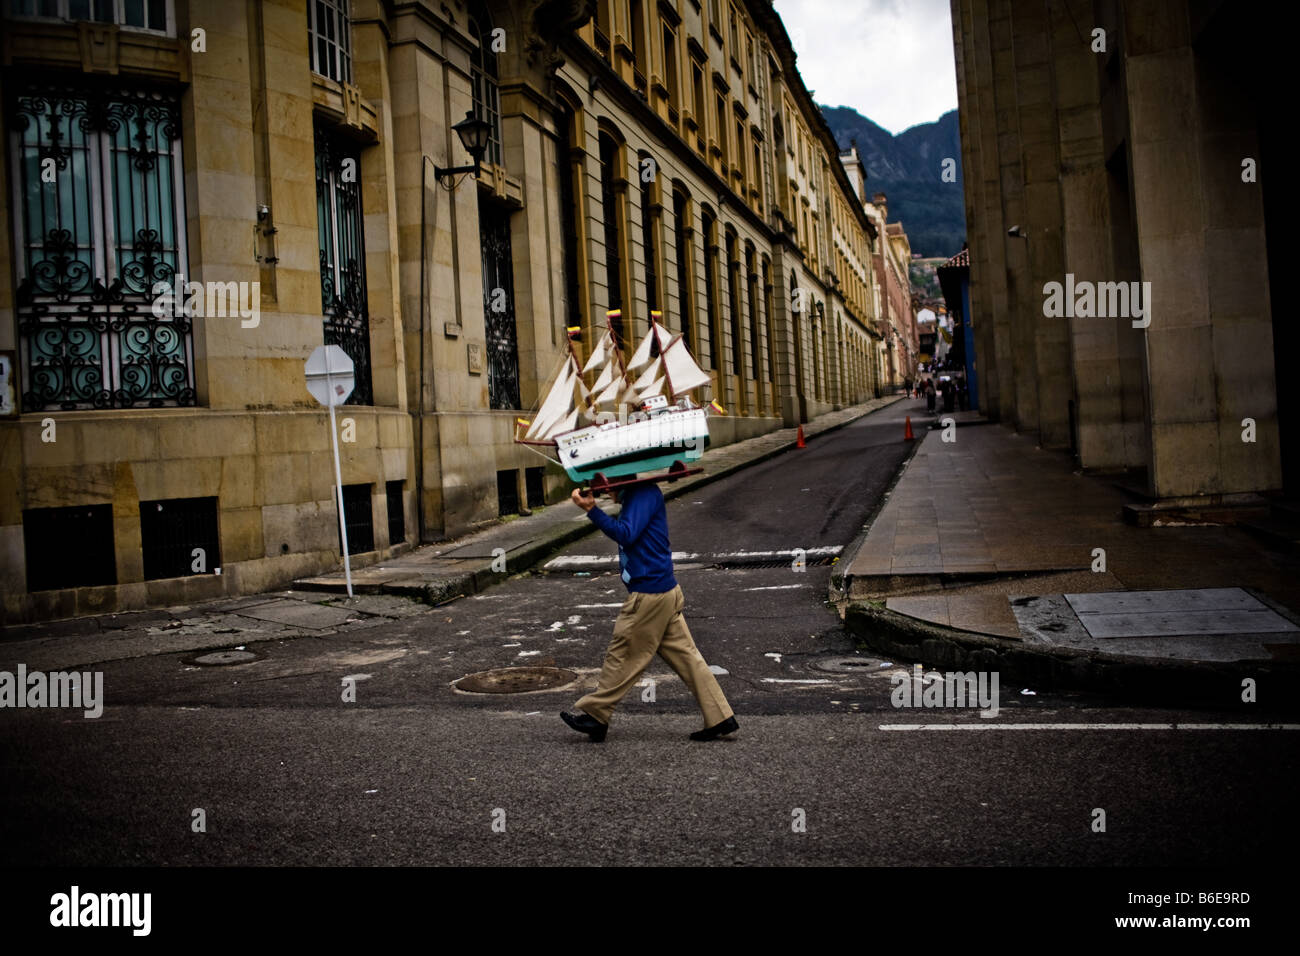 A man carries a model sailboat down a street in Bogota, Colombia. - Stock Image